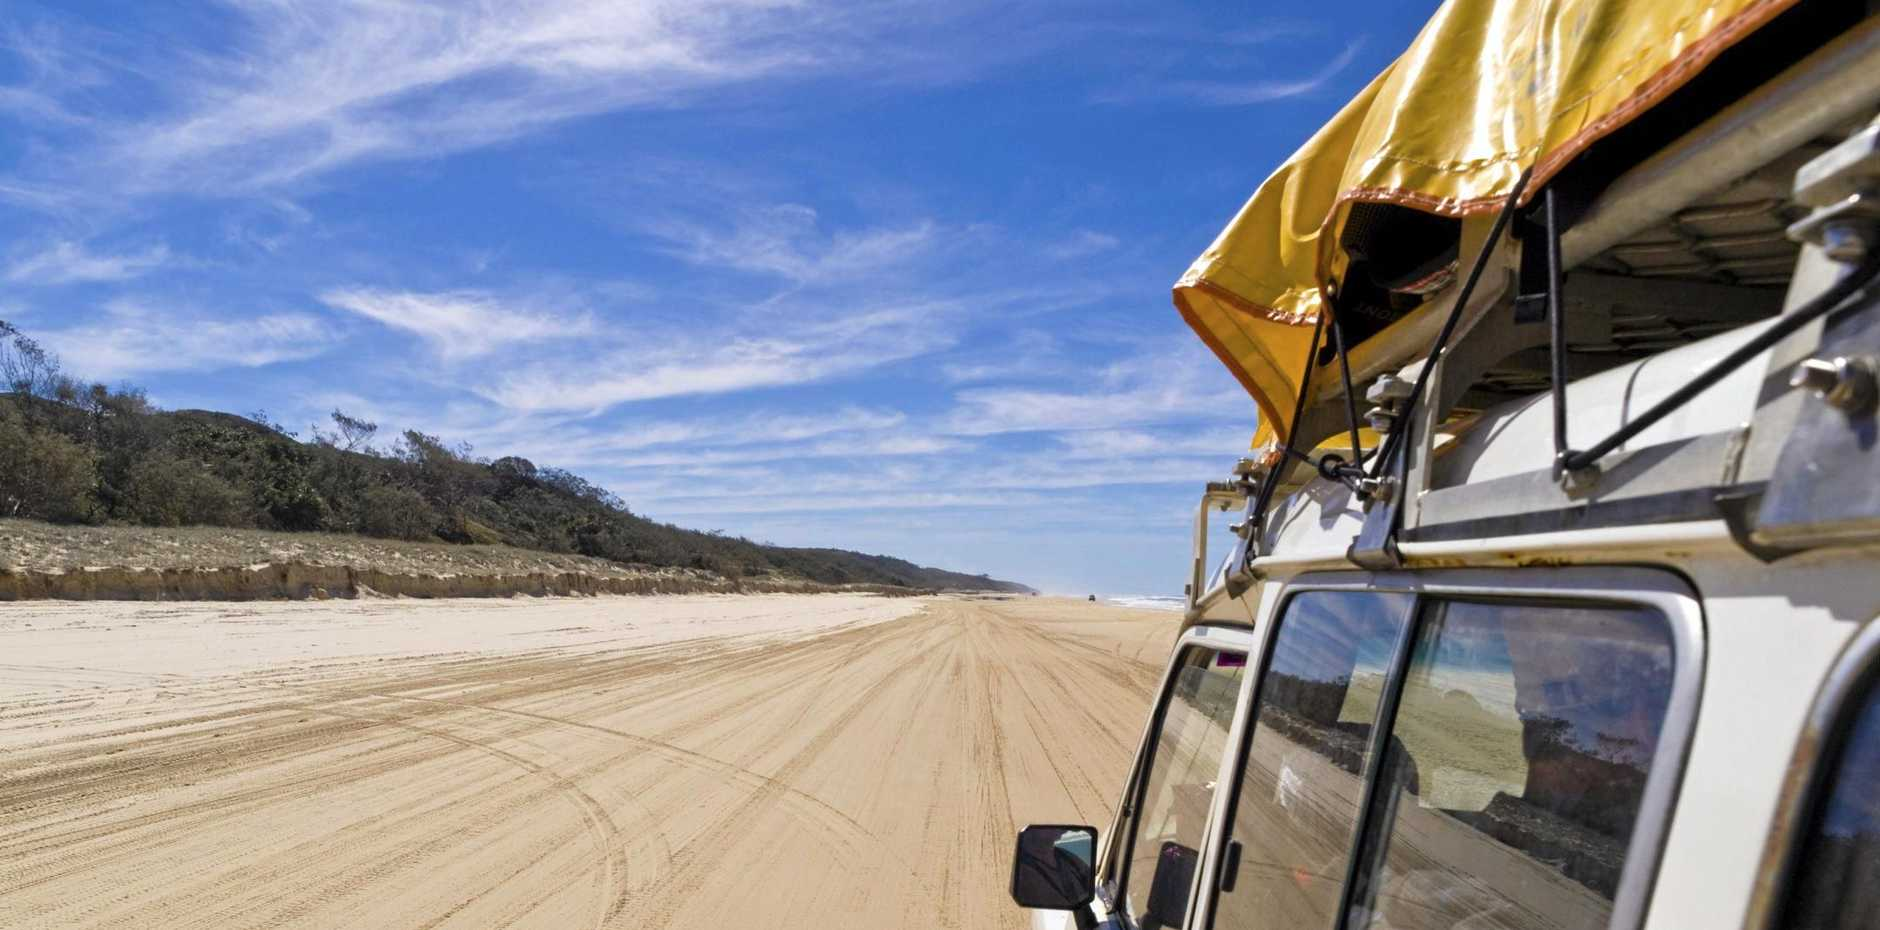 While it looks easy, the reality of driving on sand can often be very different.